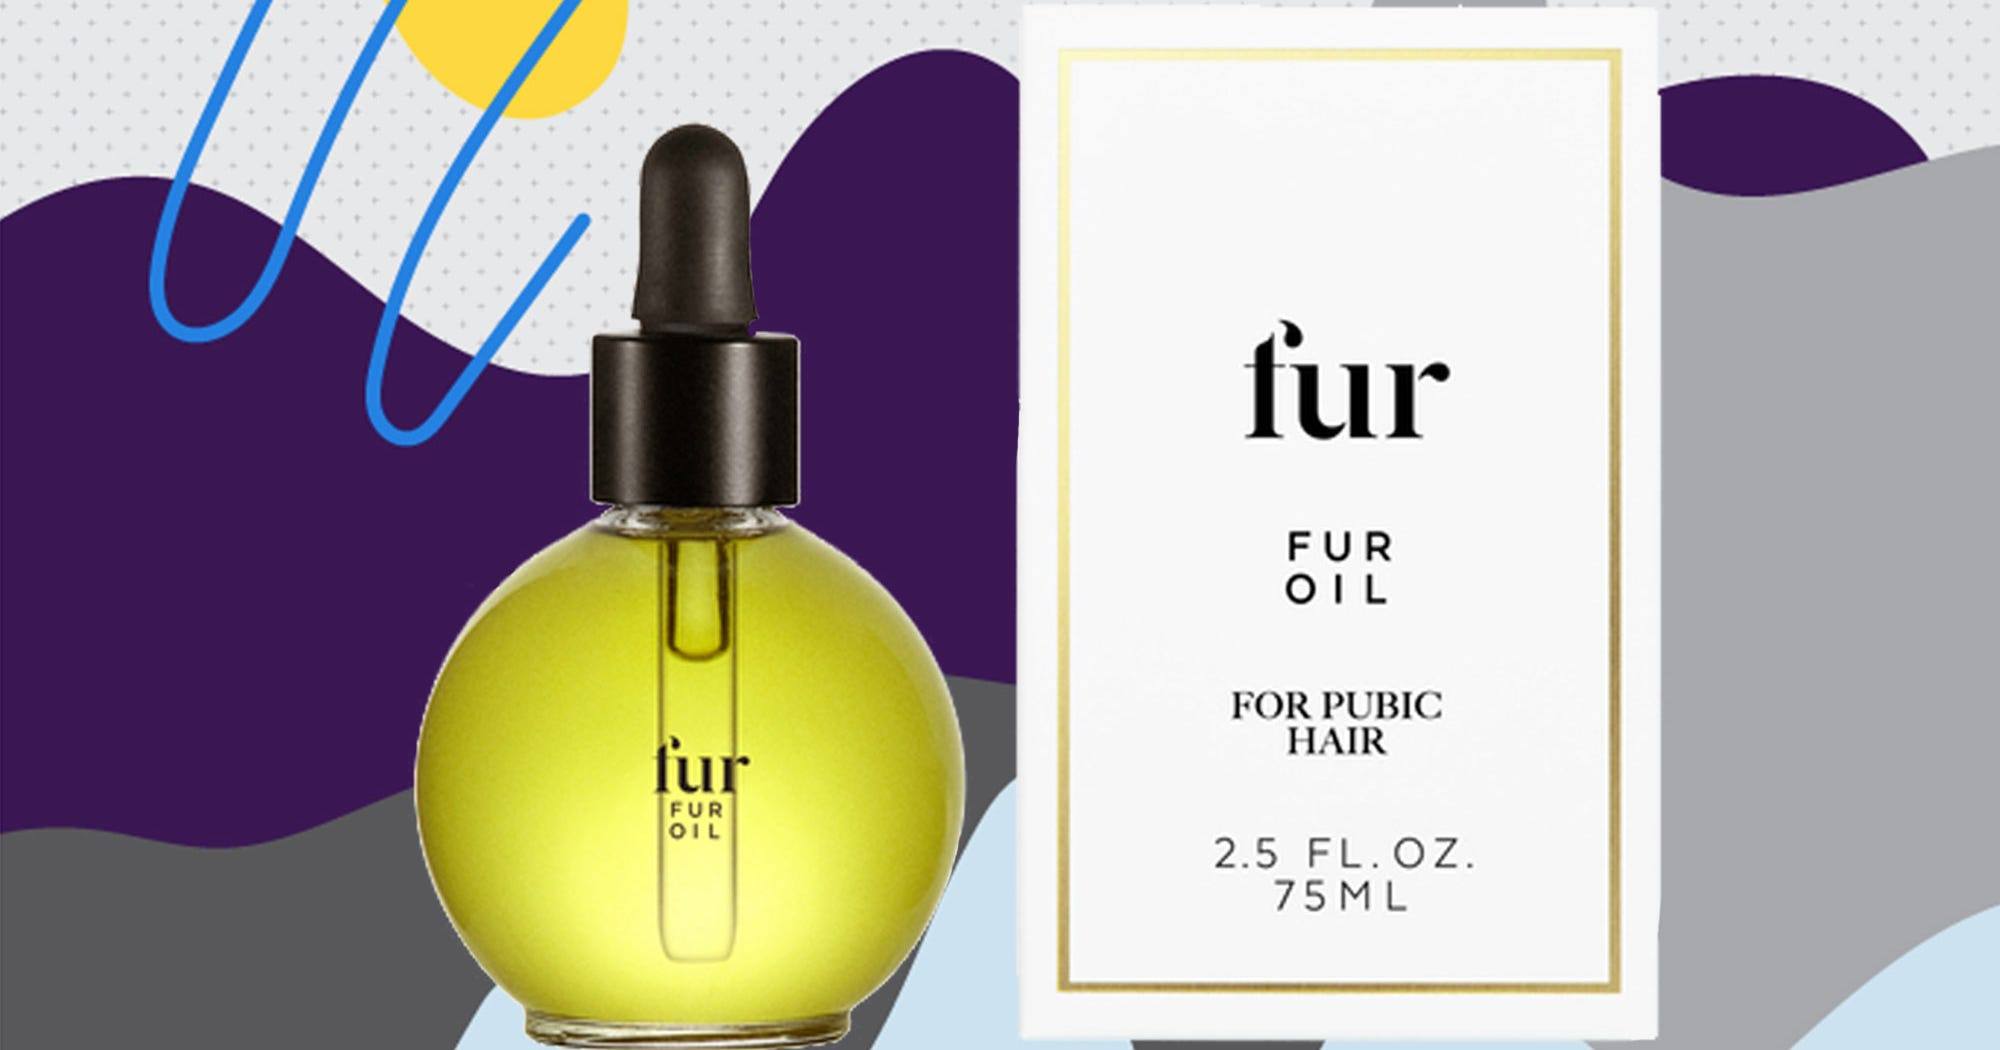 95fd0776fe1 Emma Watson Fur Pubic Hair Oil Review